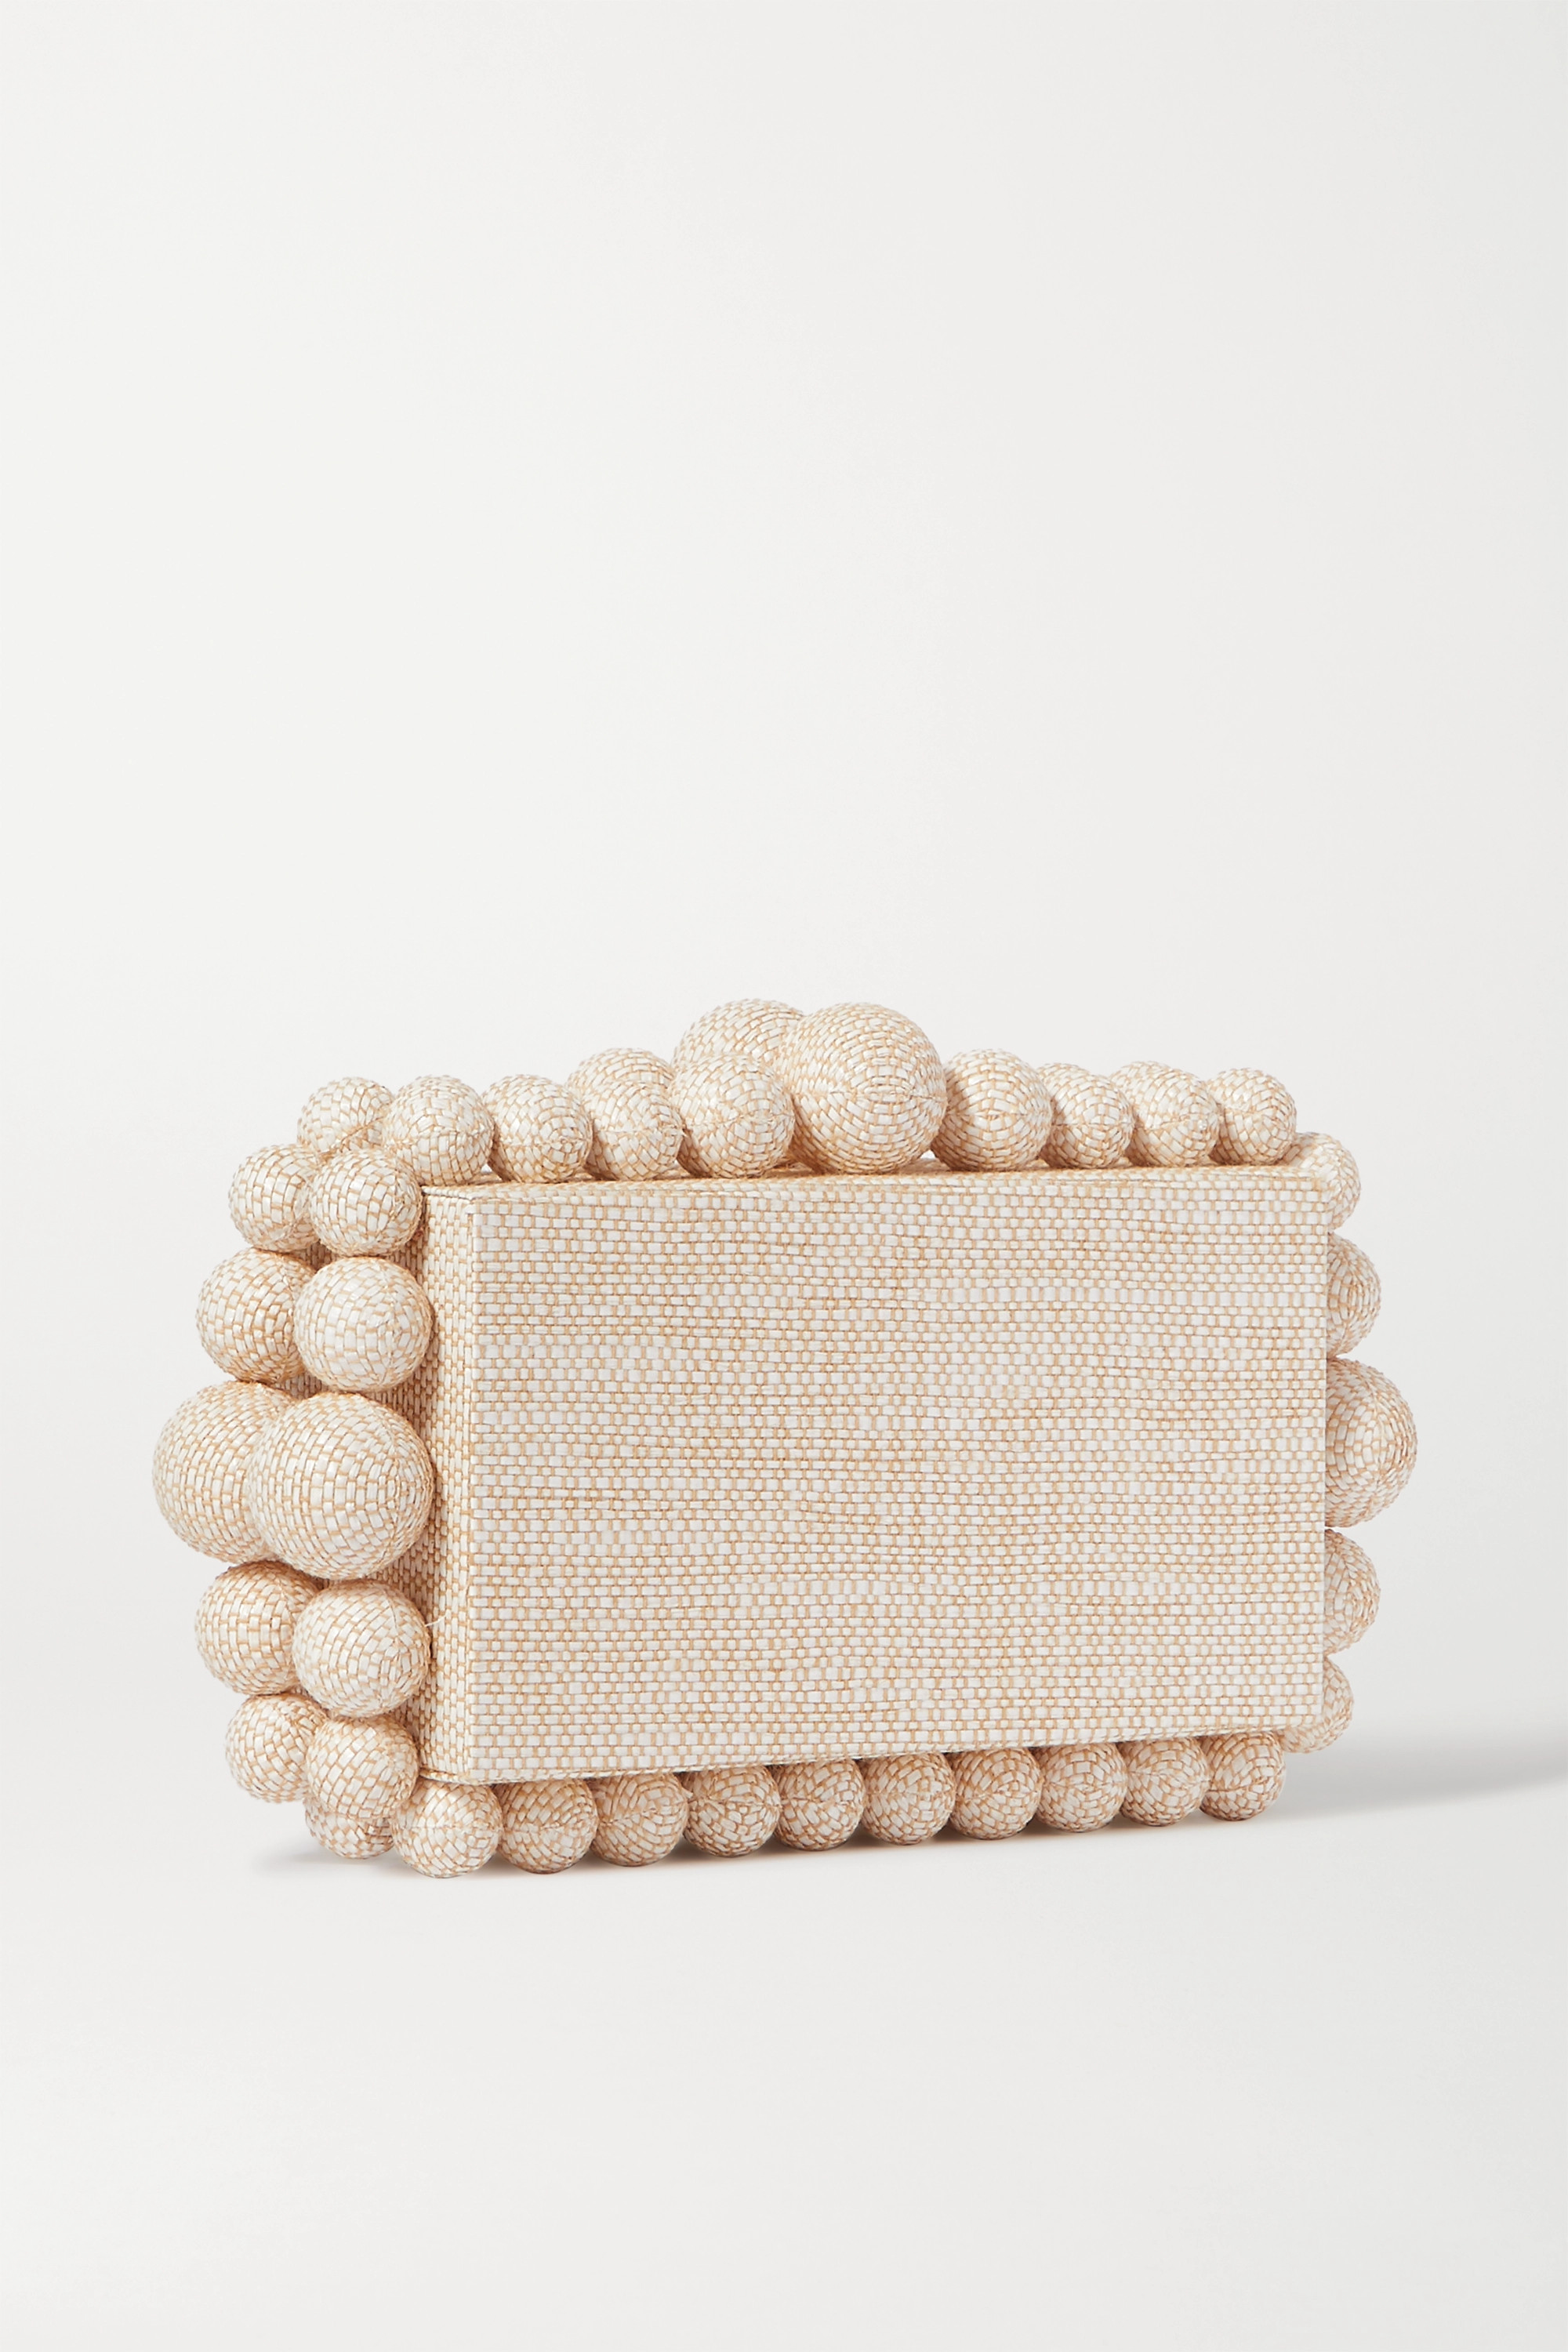 Cult Gaia Eos beaded woven raffia clutch